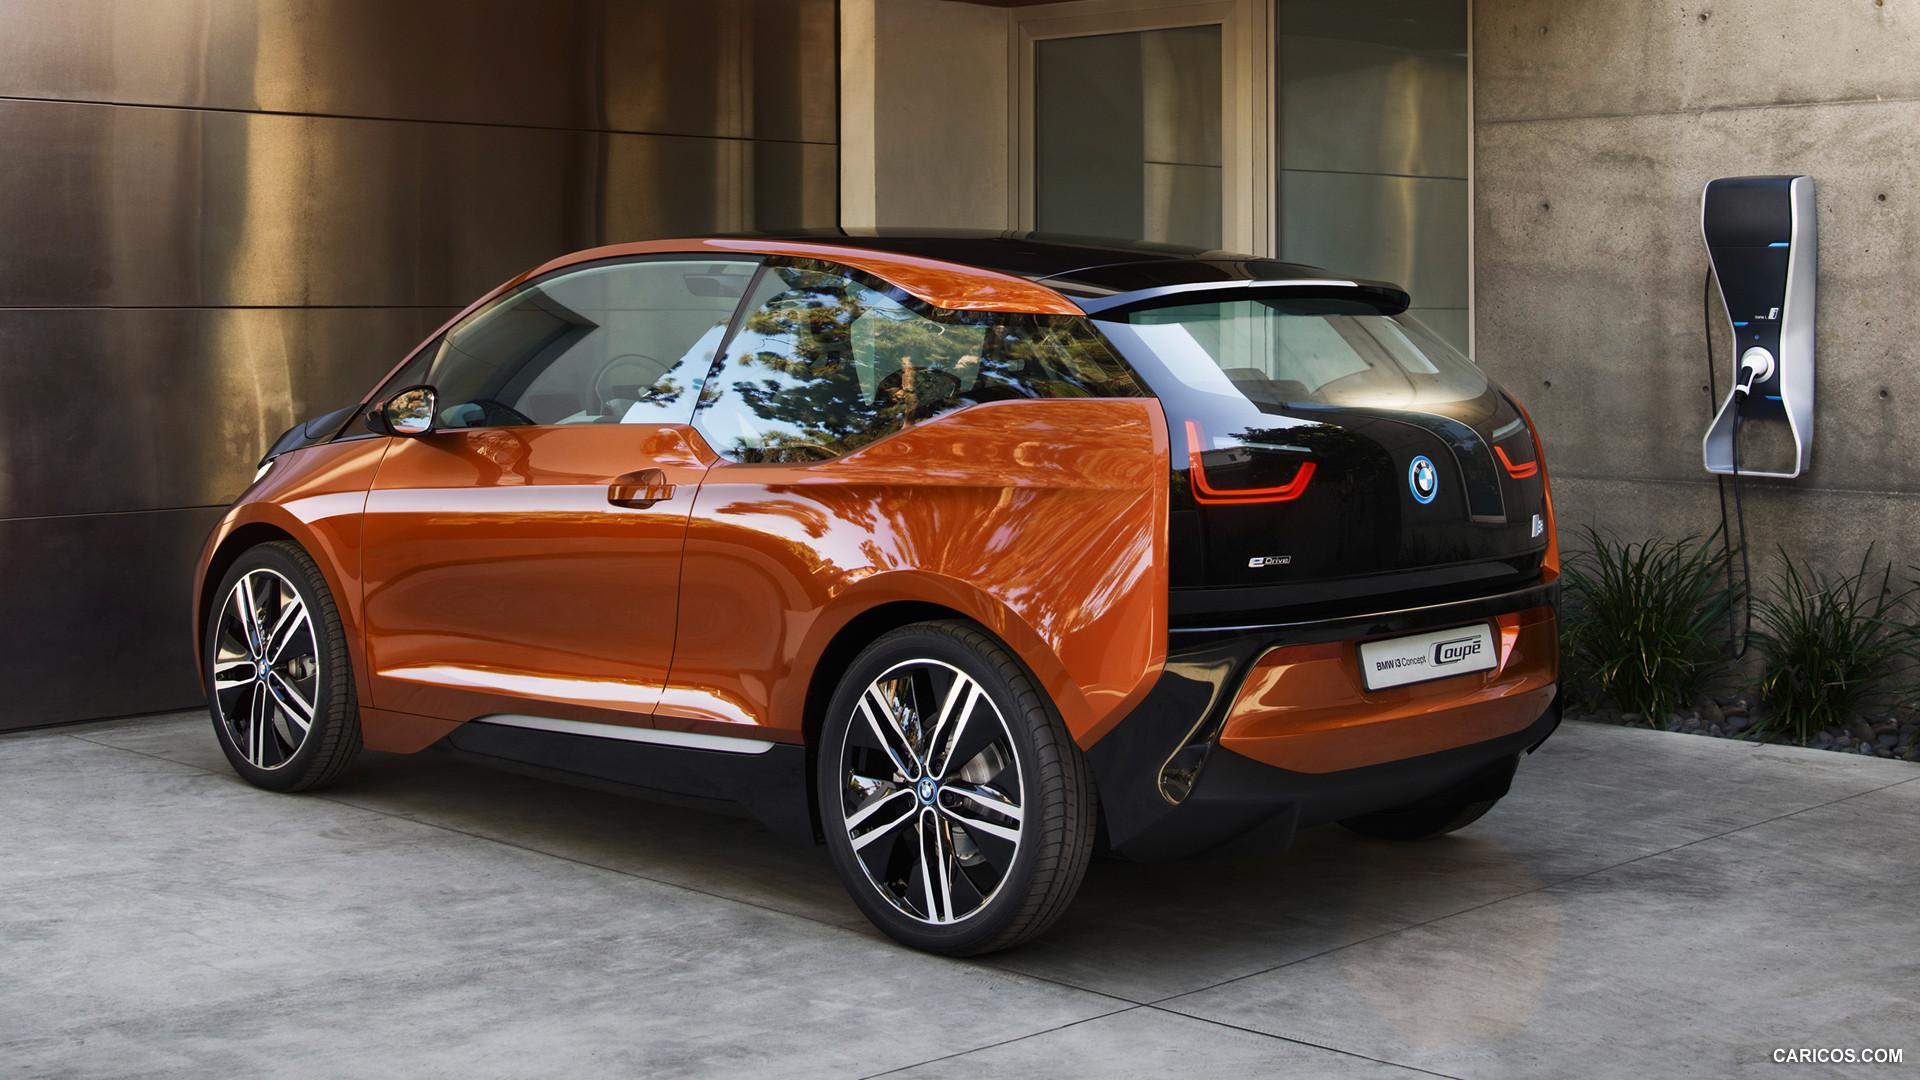 1920x1080 - BMW i3 Concept Wallpapers 24